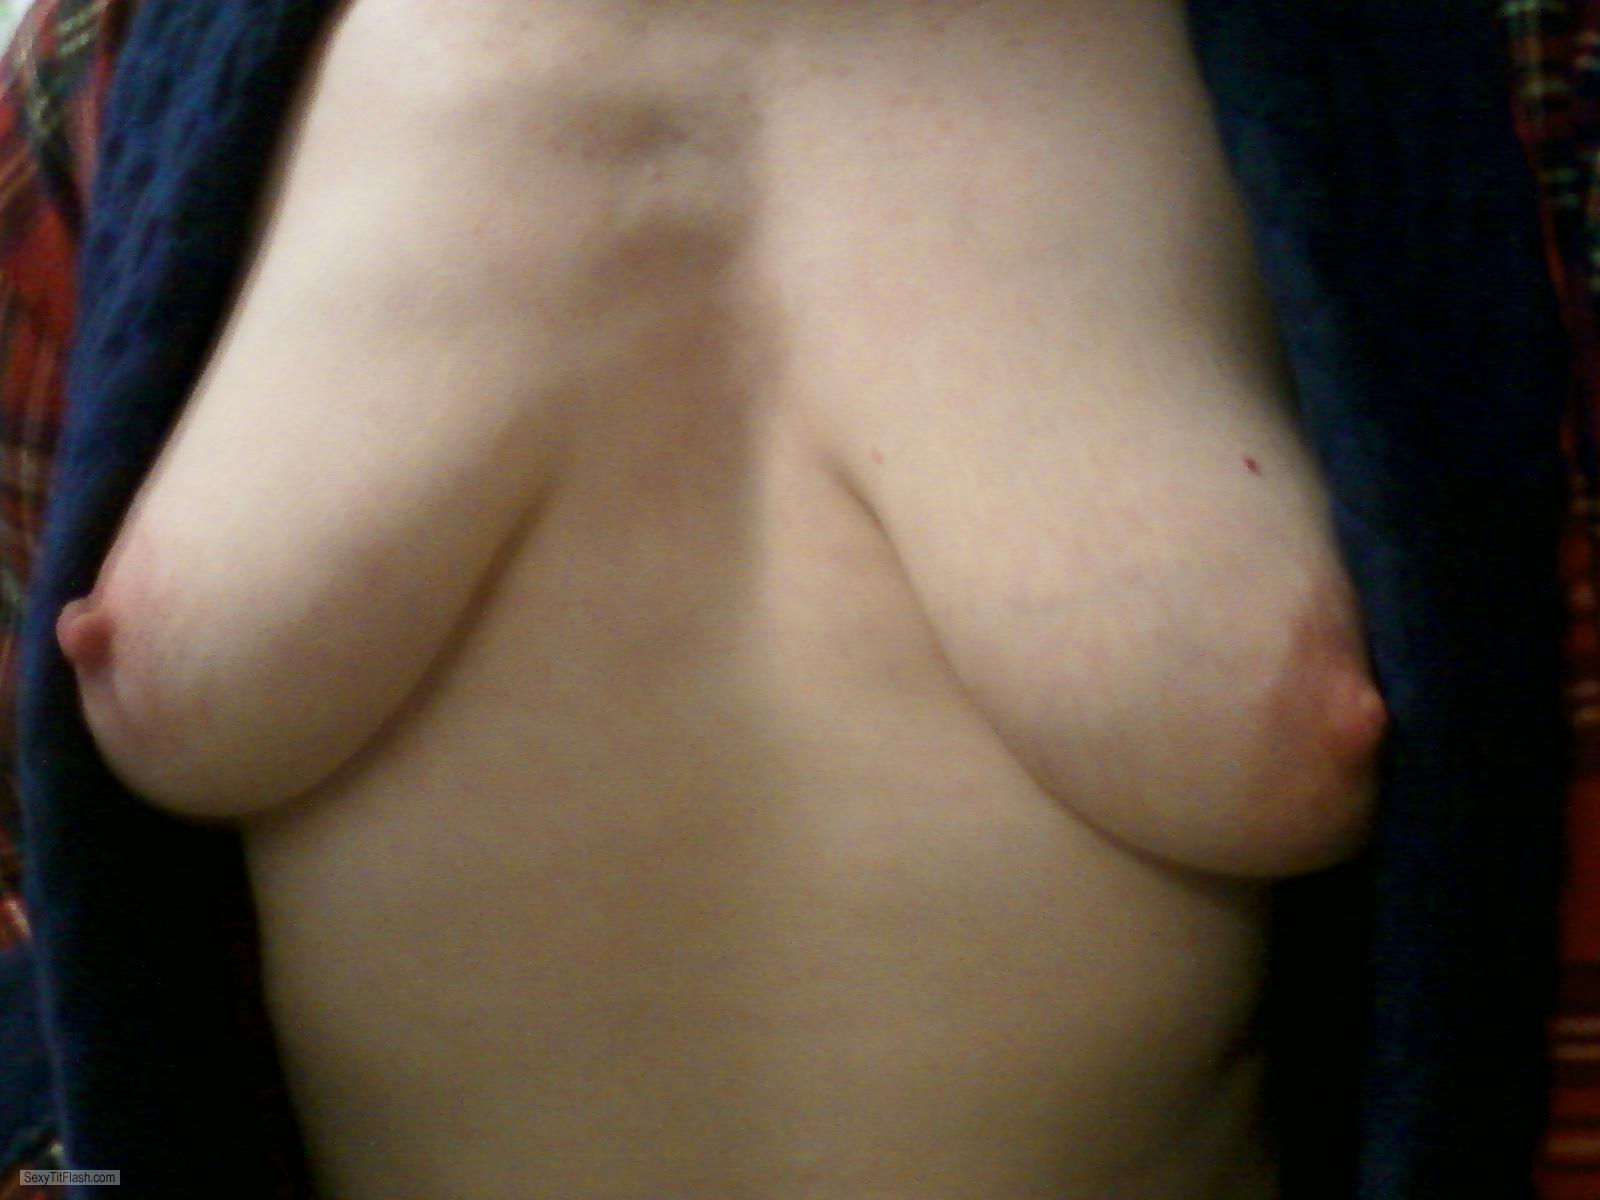 Small Tits Of A Coworker Selfie by Weatherwitch